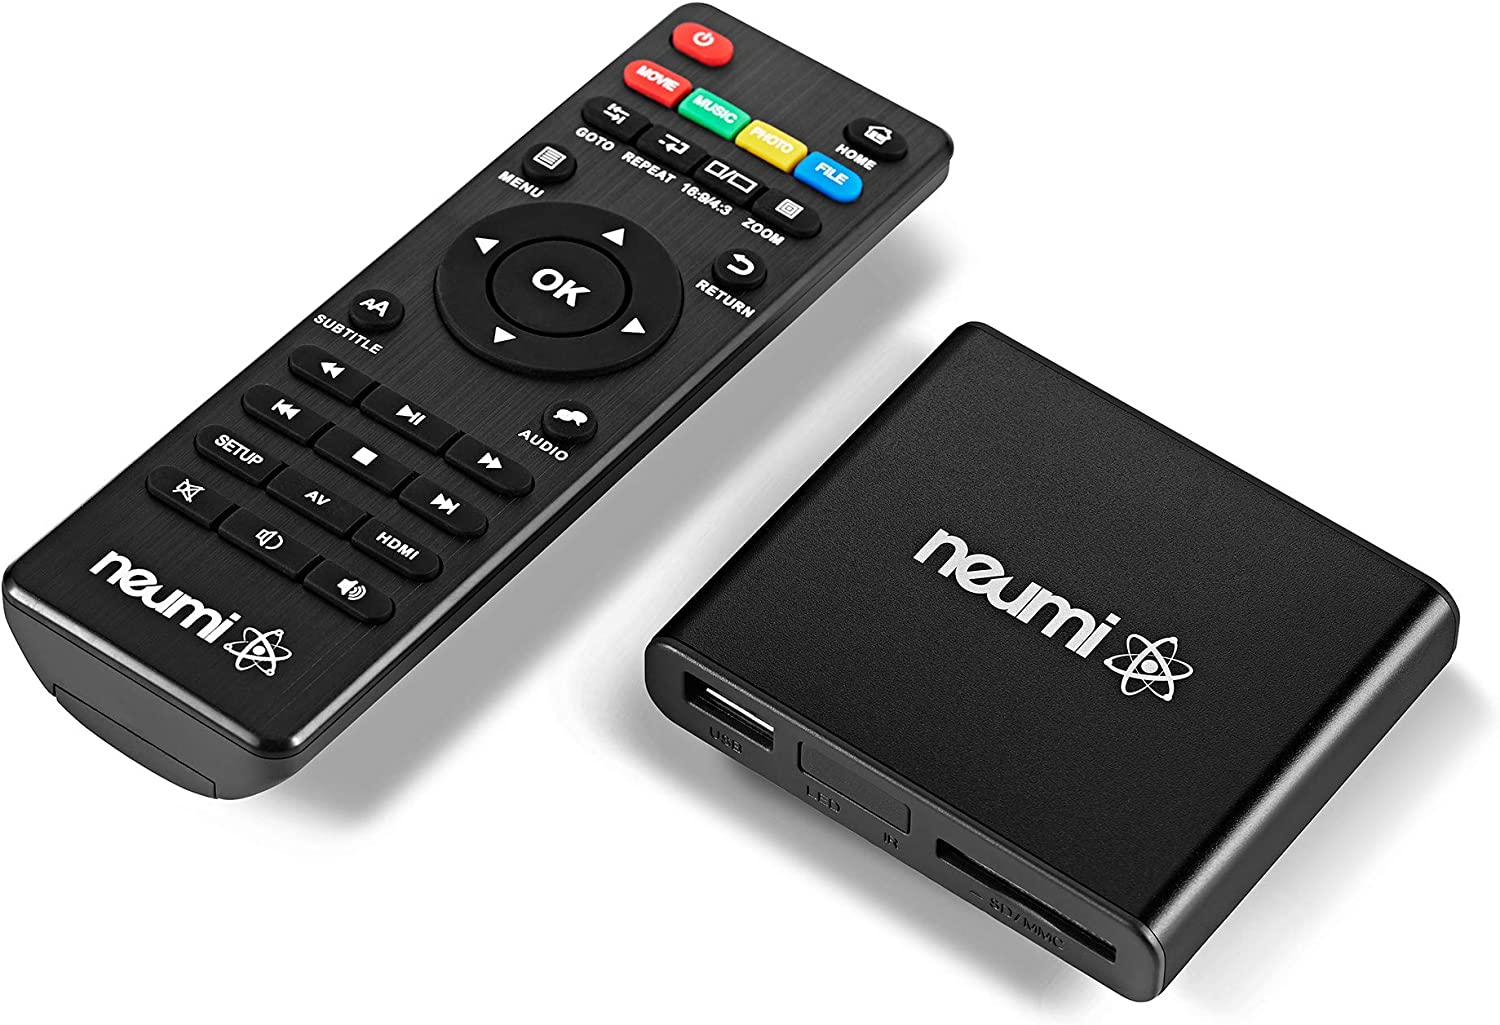 NEUMI Atom 1080P Full-HD Digital Media Player for USB Drives and SD Cards - with HDMI and Analog AV, Automatic Playback and Looping Capability